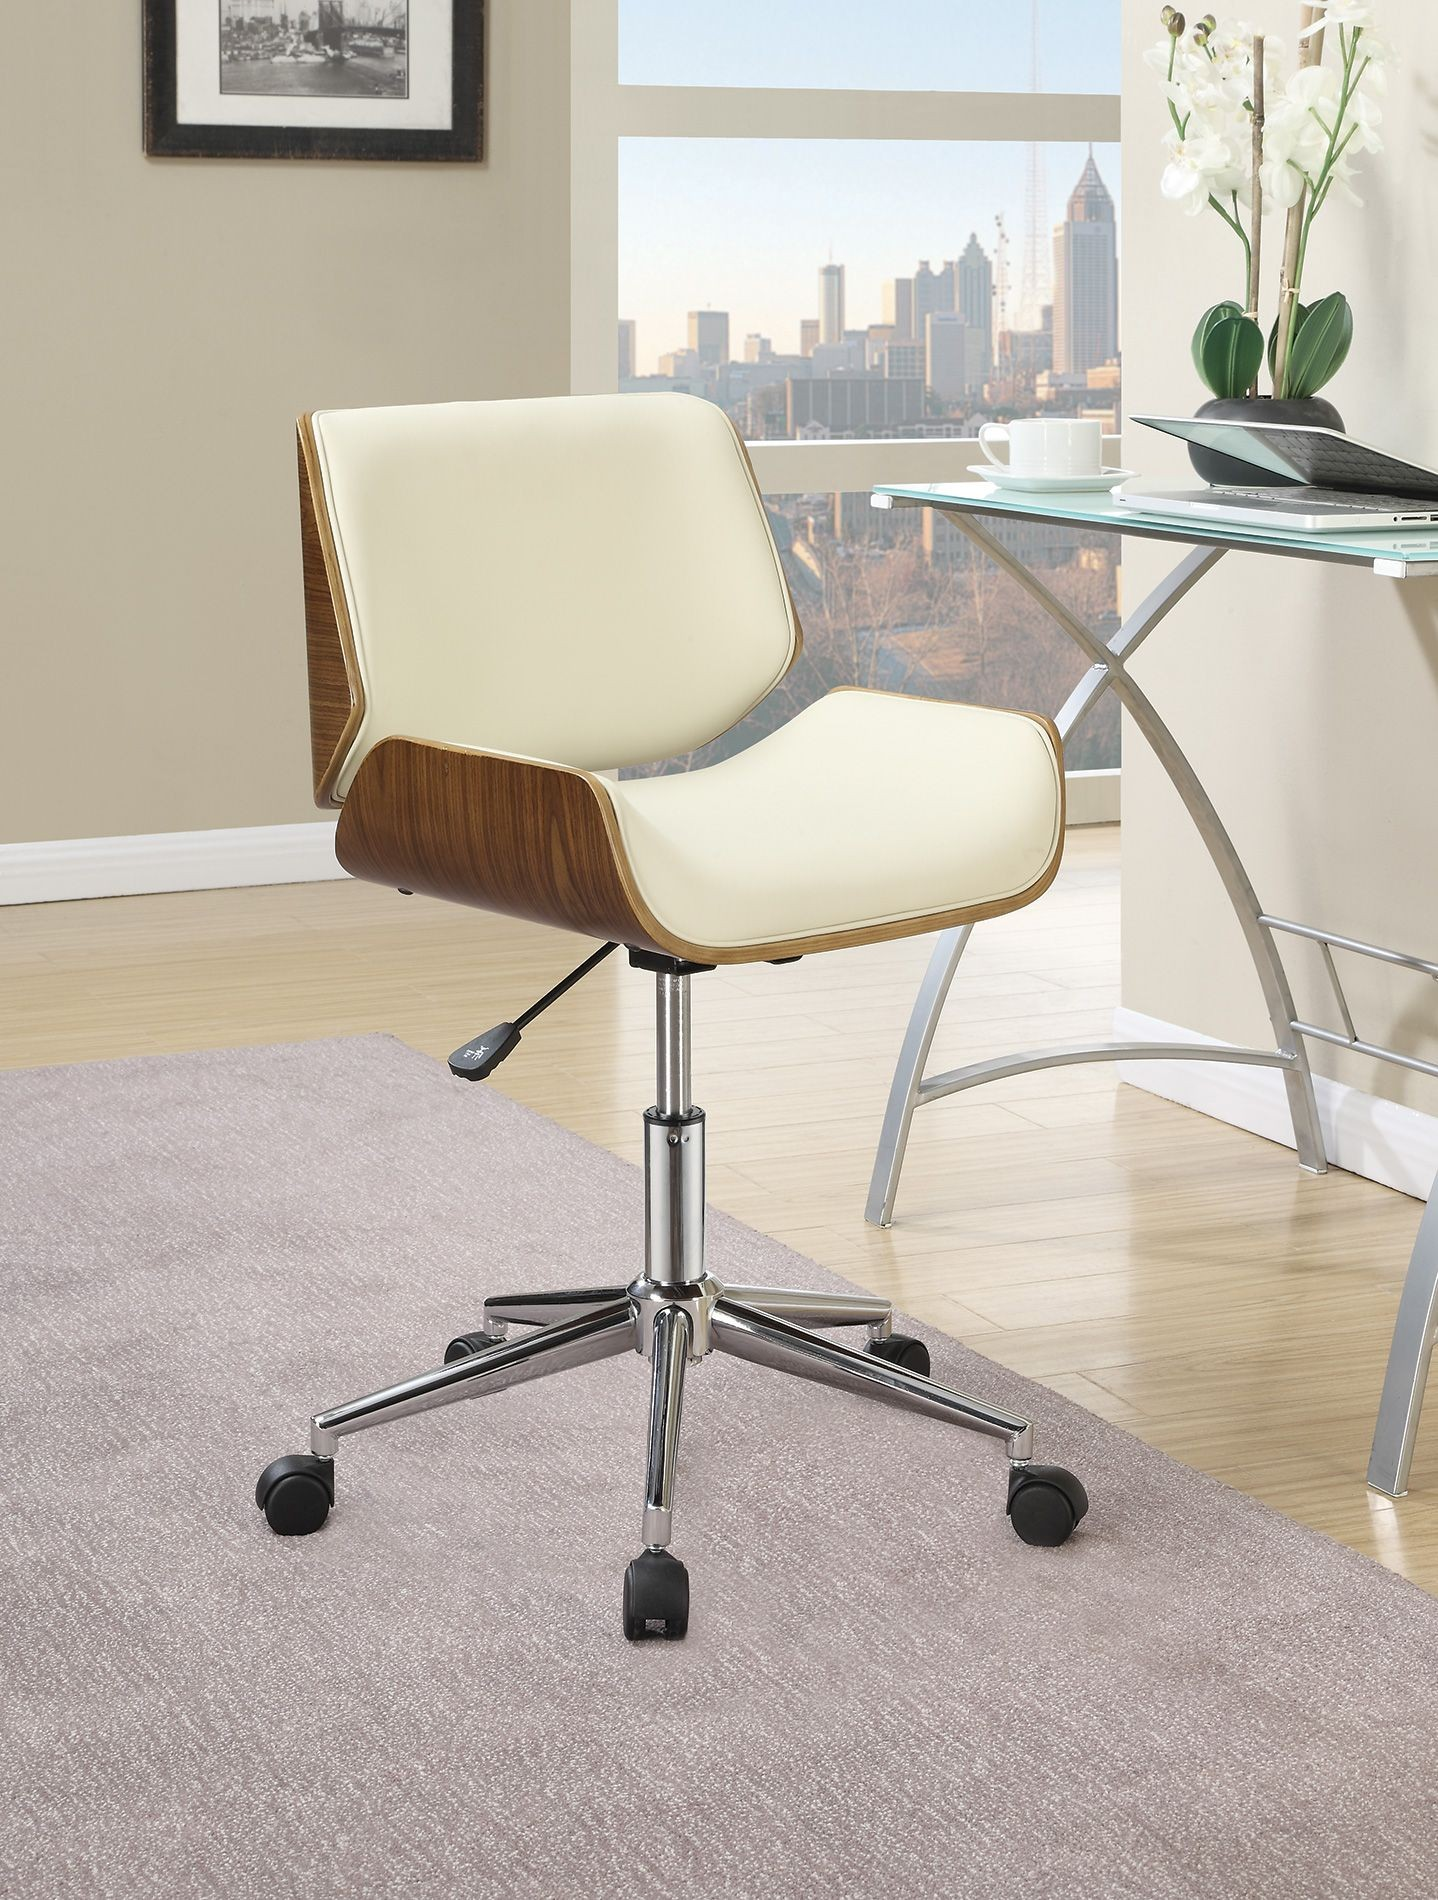 800613 Ecru Office Chair From Coaster 800613 Coleman